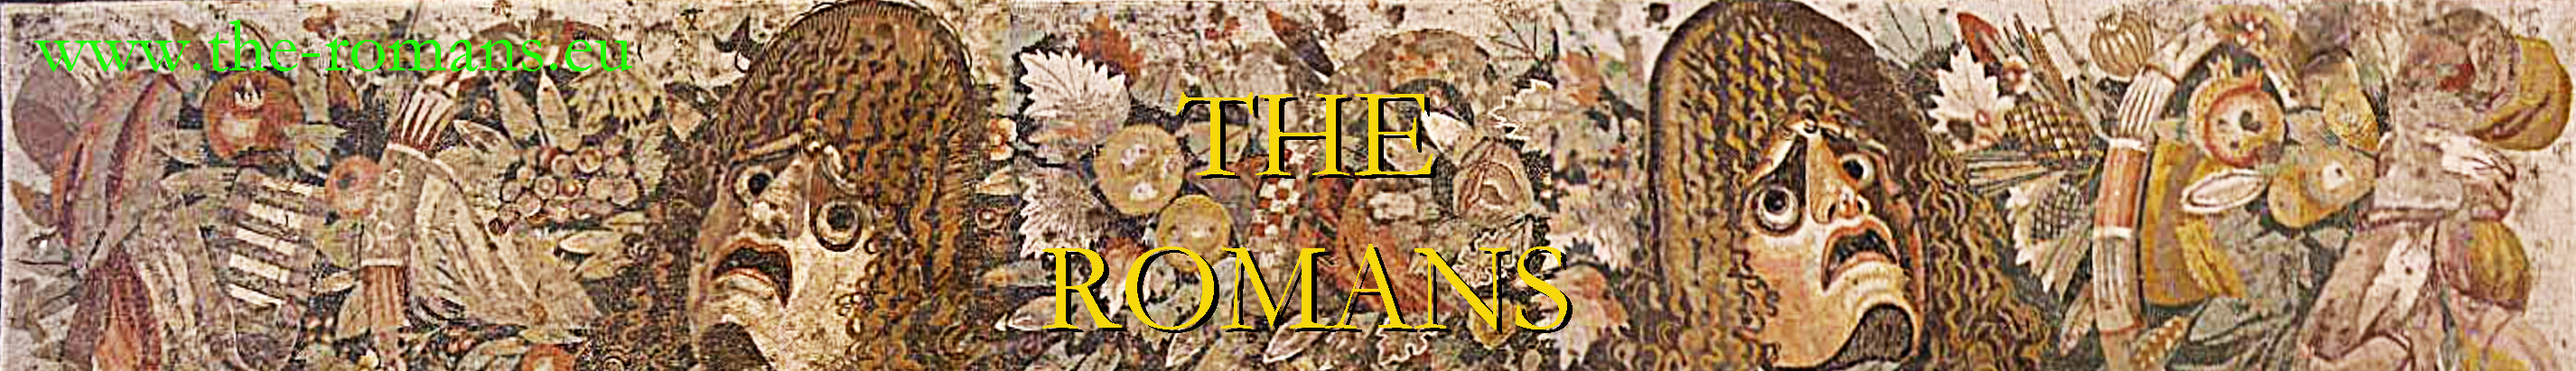 logo for the-romans.eu